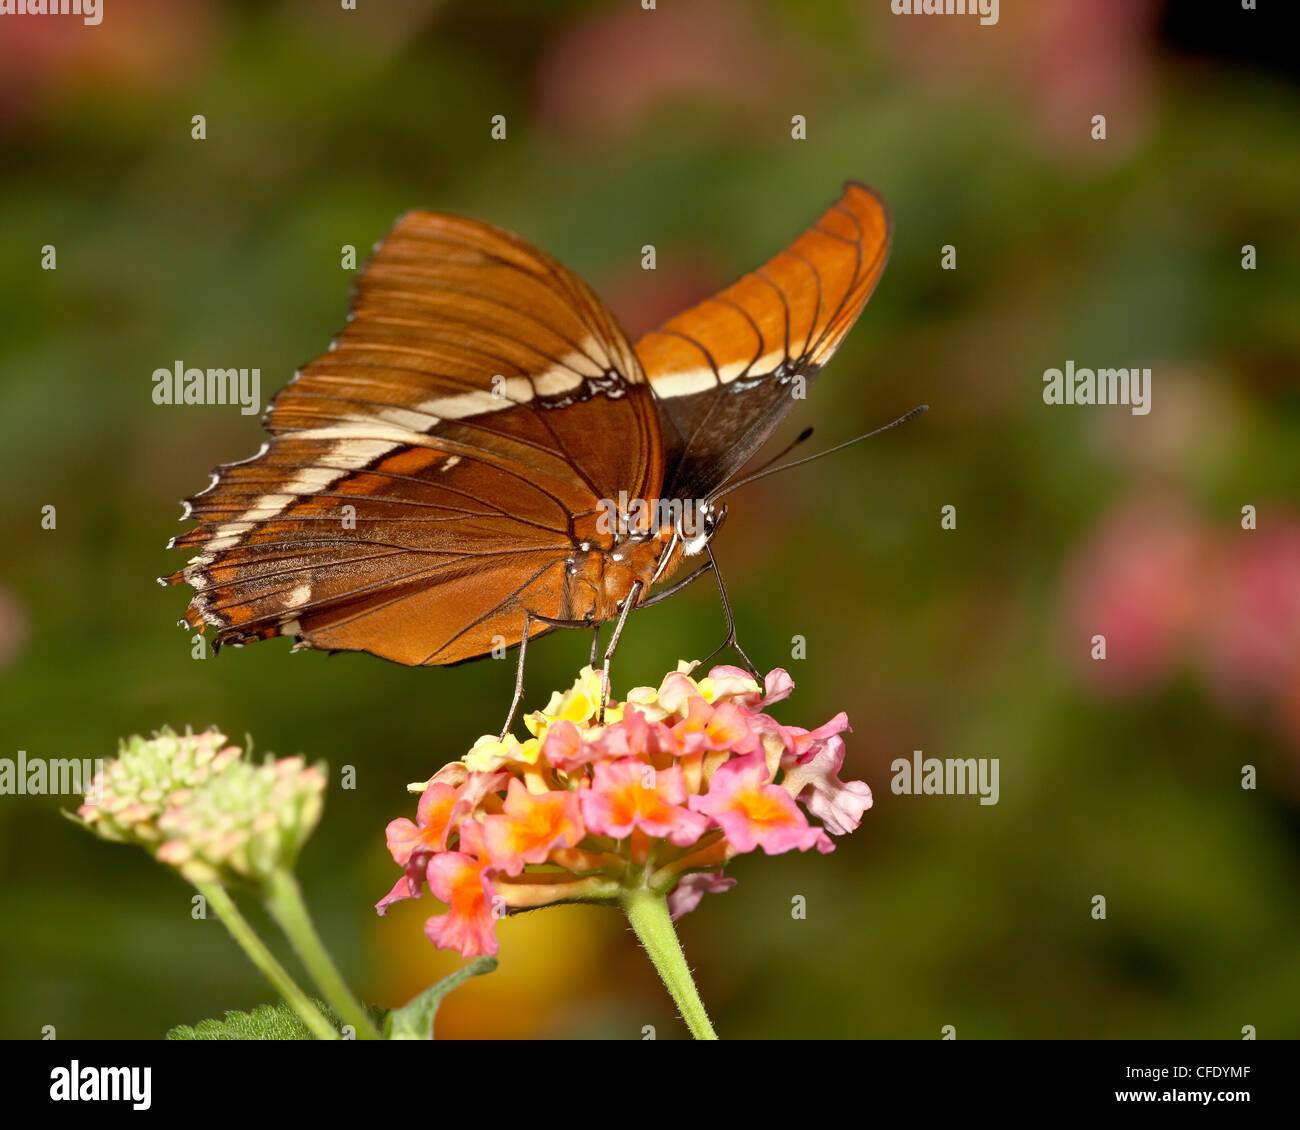 Brown siproeta (brown page butterfly) in captivity, Butterfly World and Gardens, Coombs, British Columbia, Canada - Stock Image